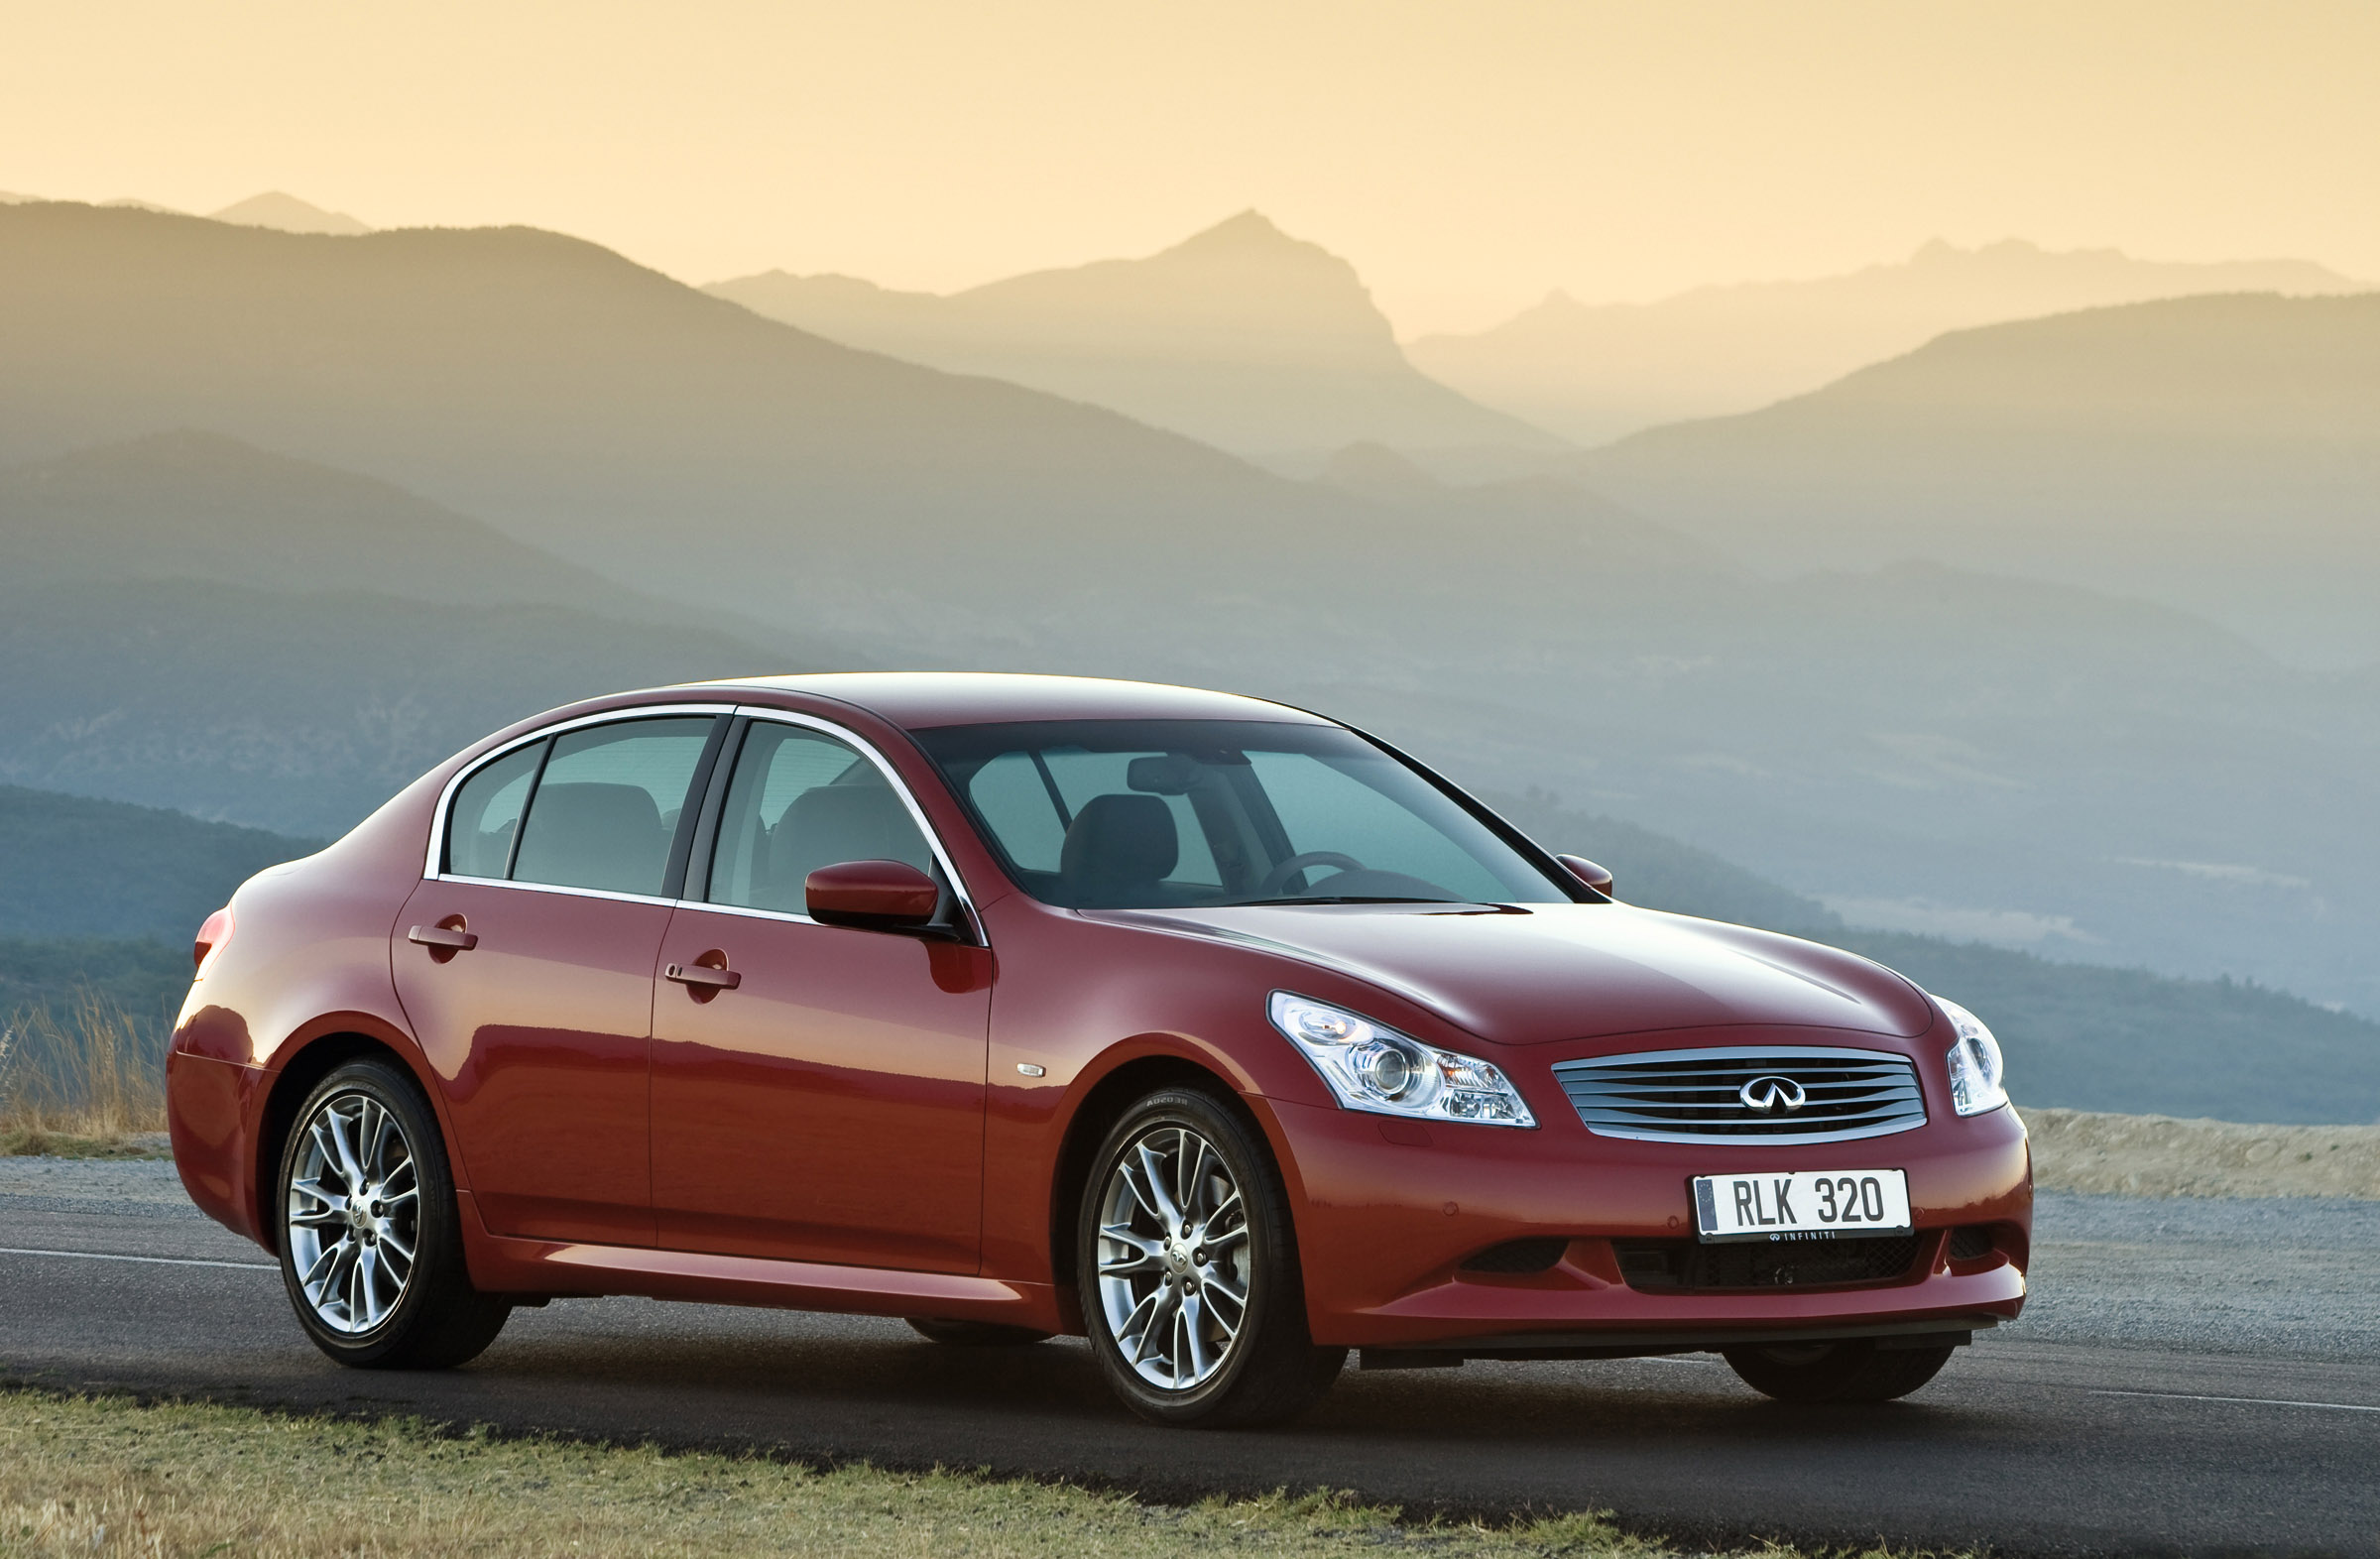 2009 infiniti g37 coupe reviews ratings yahoo autos. Black Bedroom Furniture Sets. Home Design Ideas